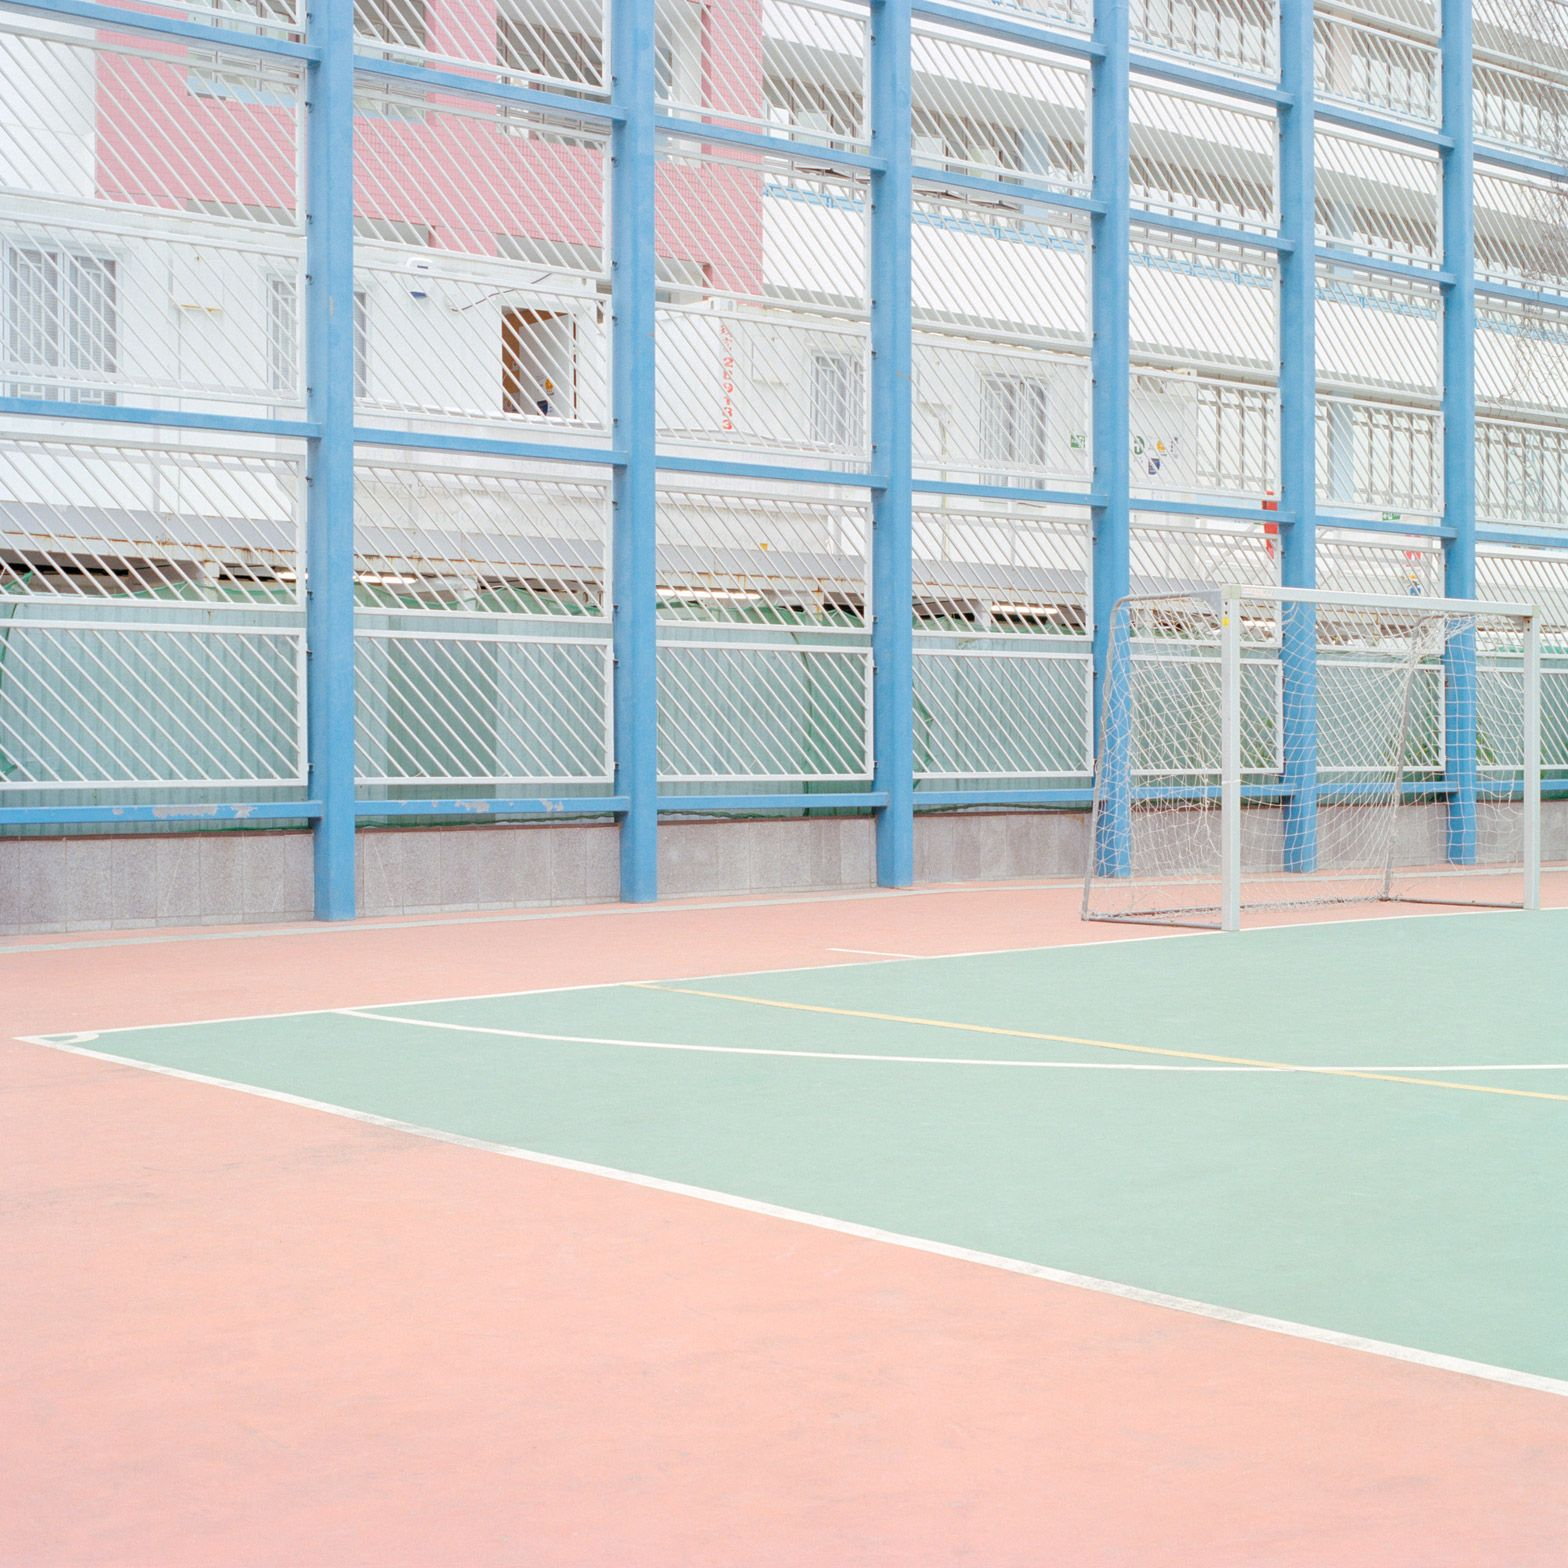 Ward Roberts Captures The Colours Of Basketball Courts